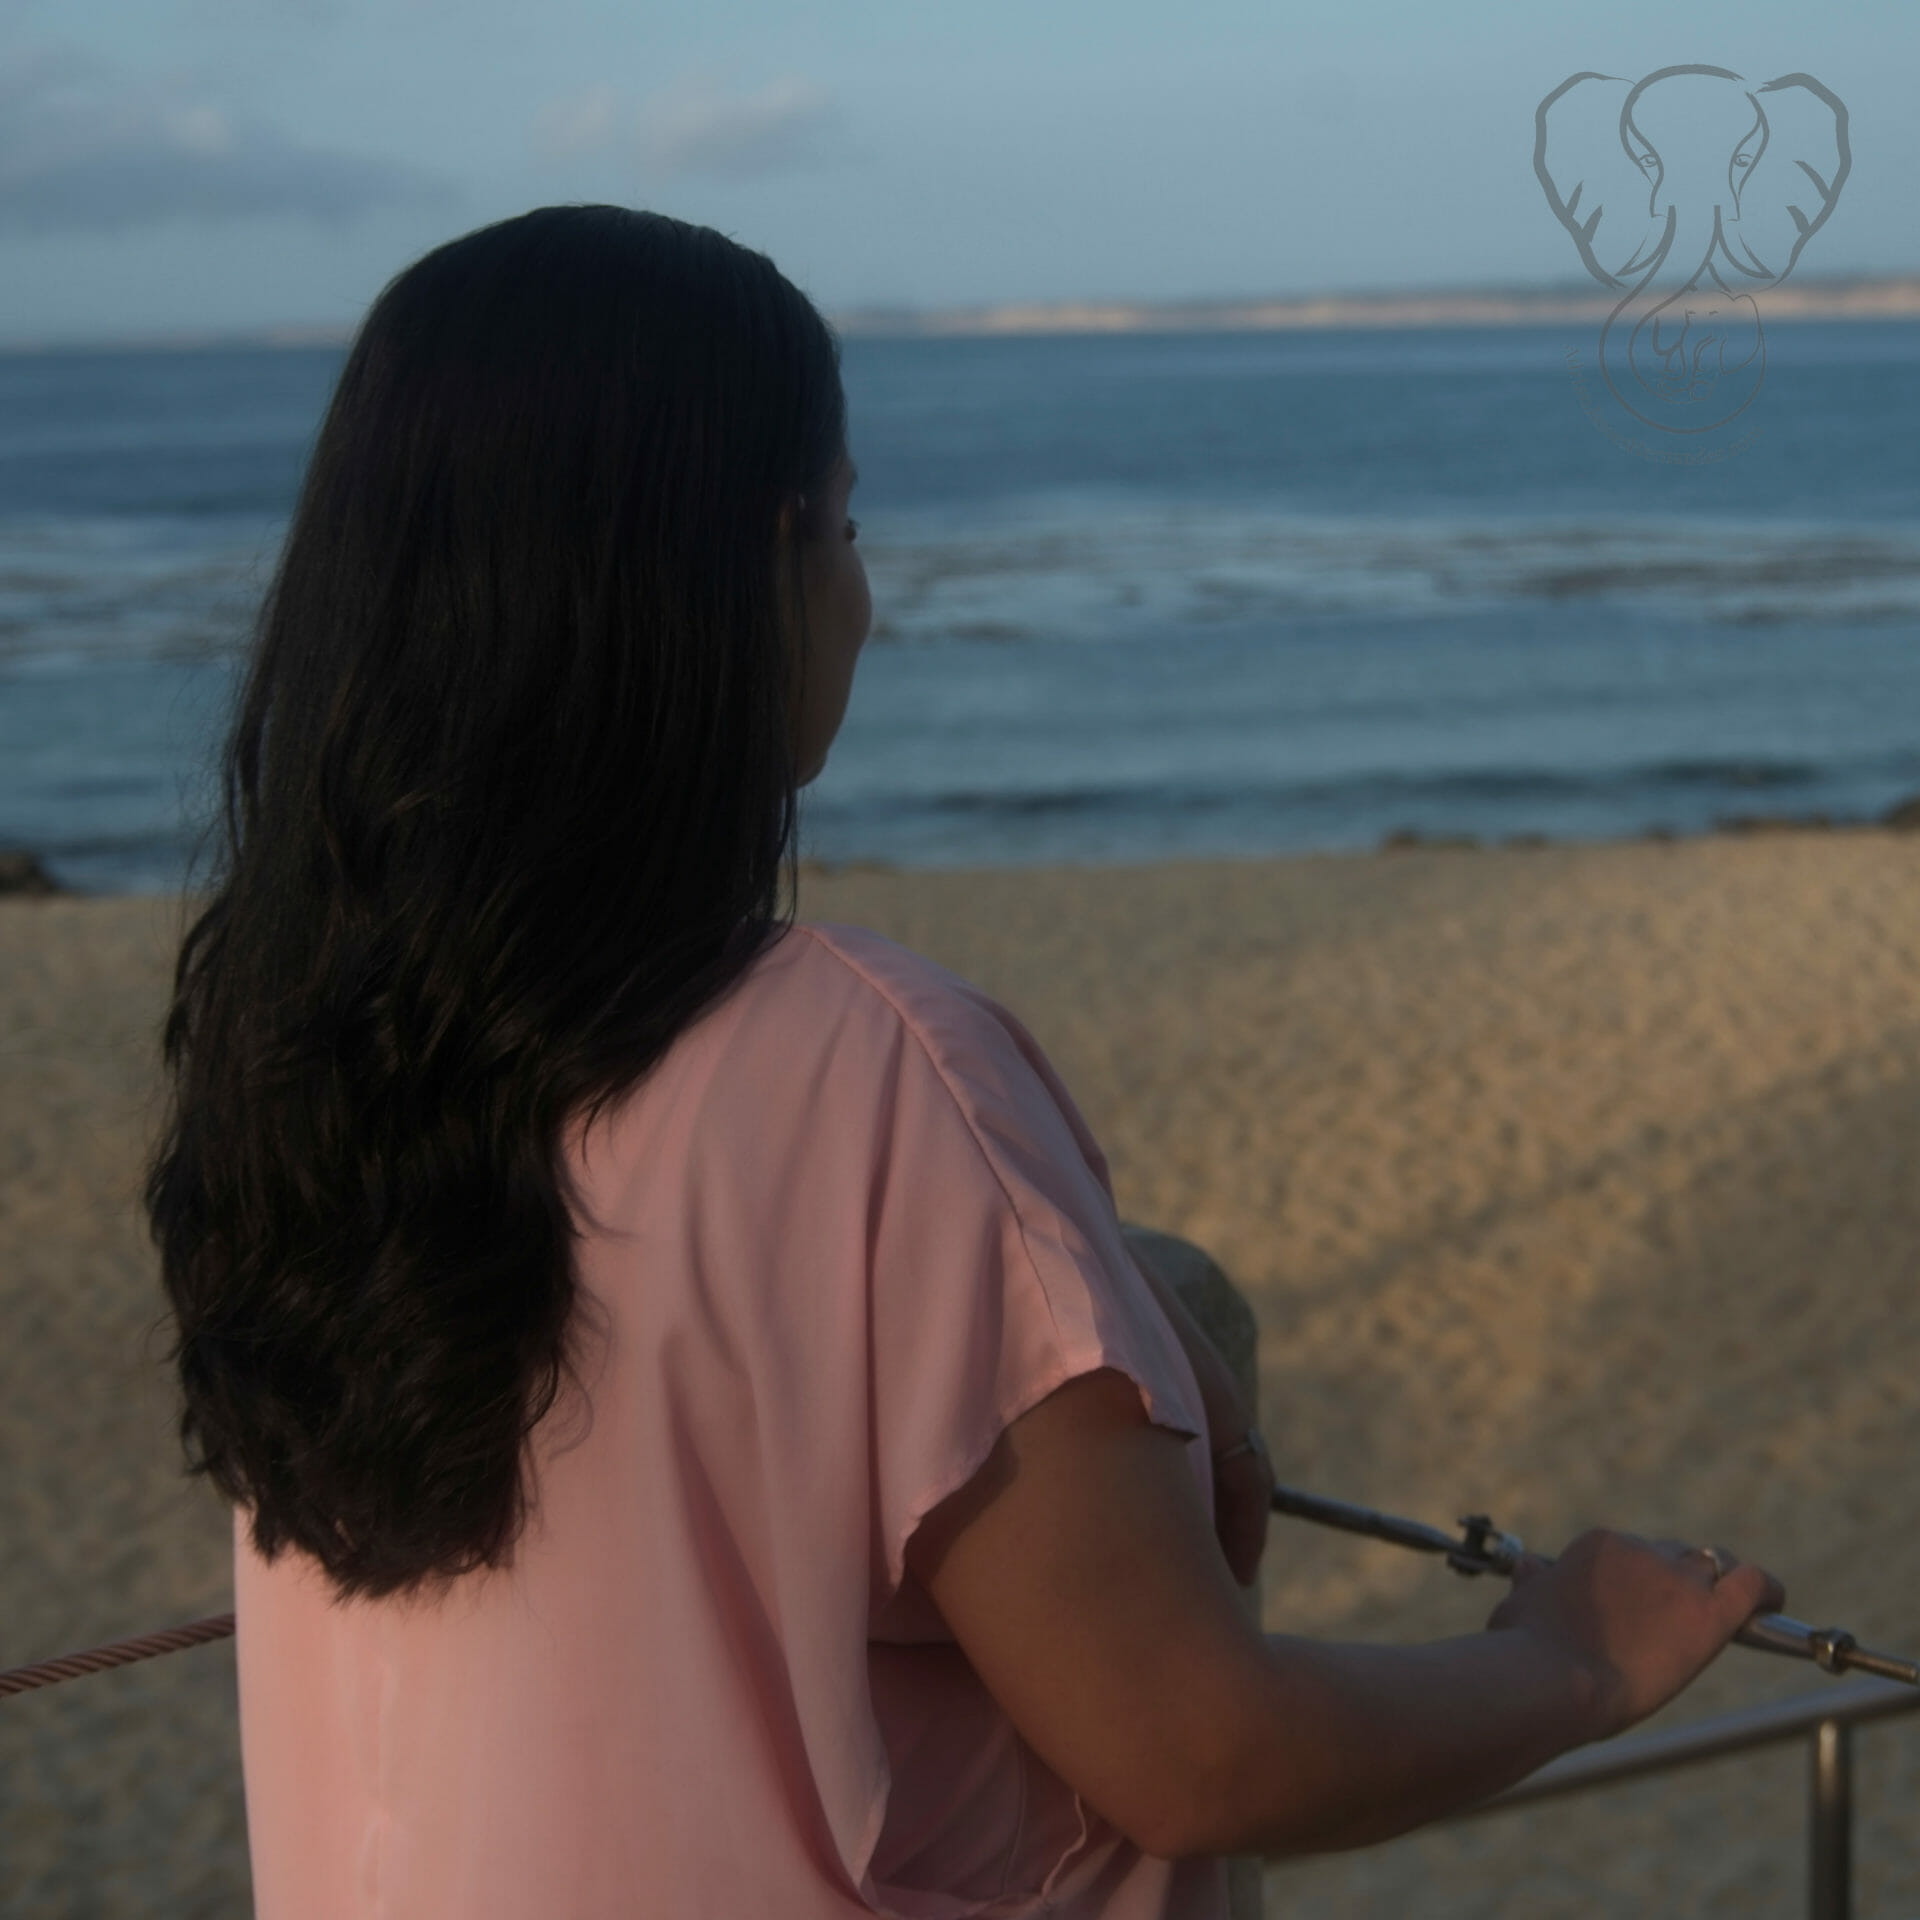 Rear view of Miranda facing the ocean. Miranda is wearing a loose pink shirt and her dark hair is down on her back. (Synch Media)